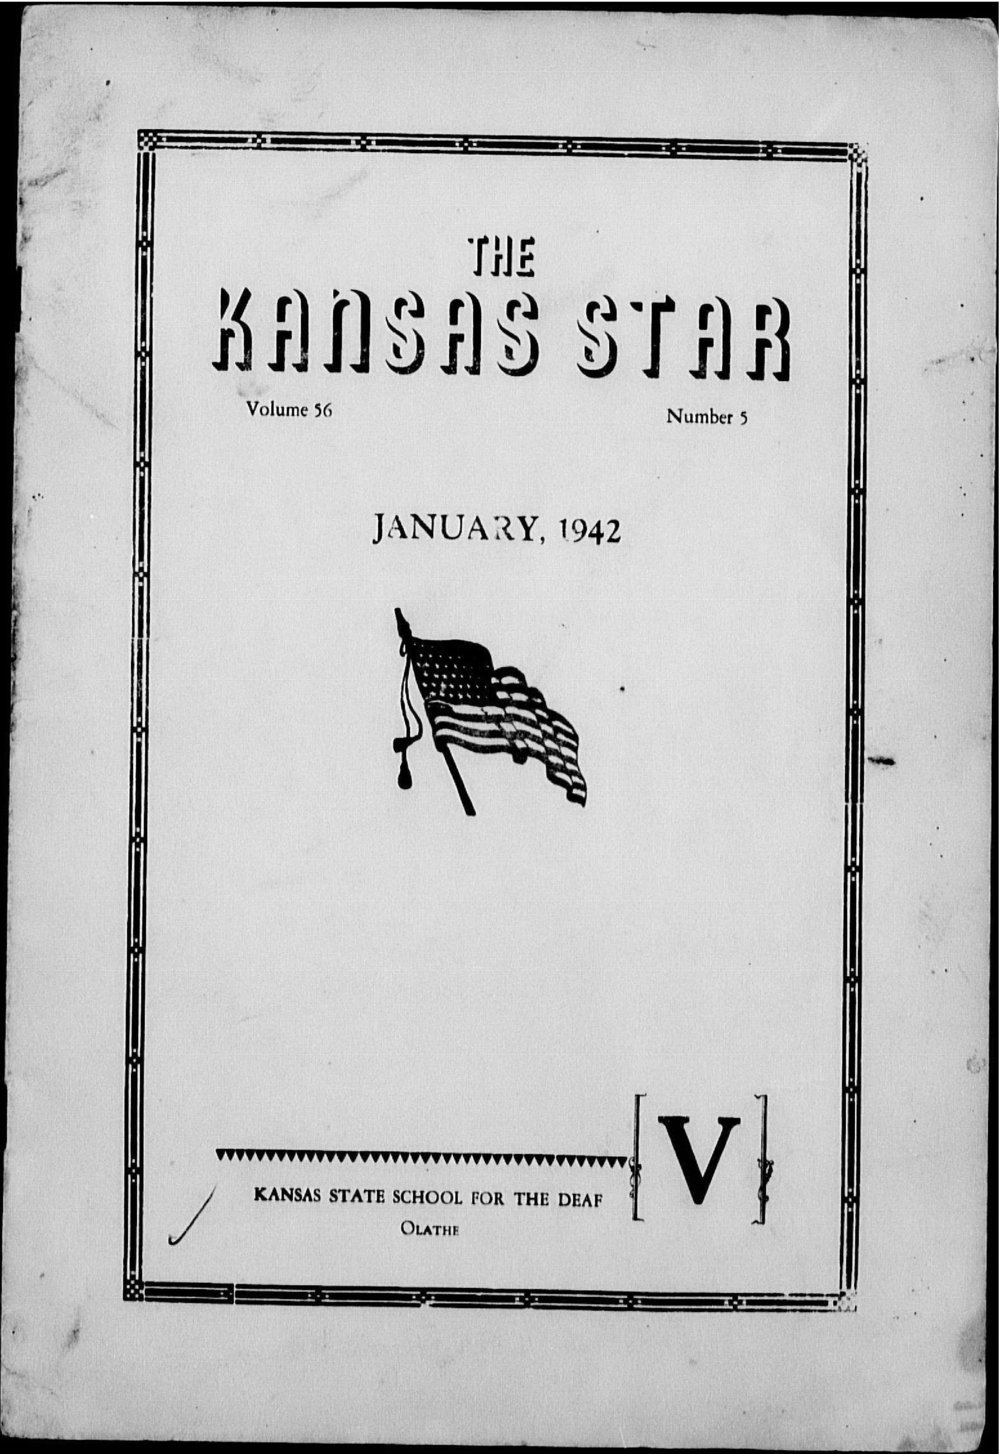 The Kansas Star, volume 56, number 5 - Front cover